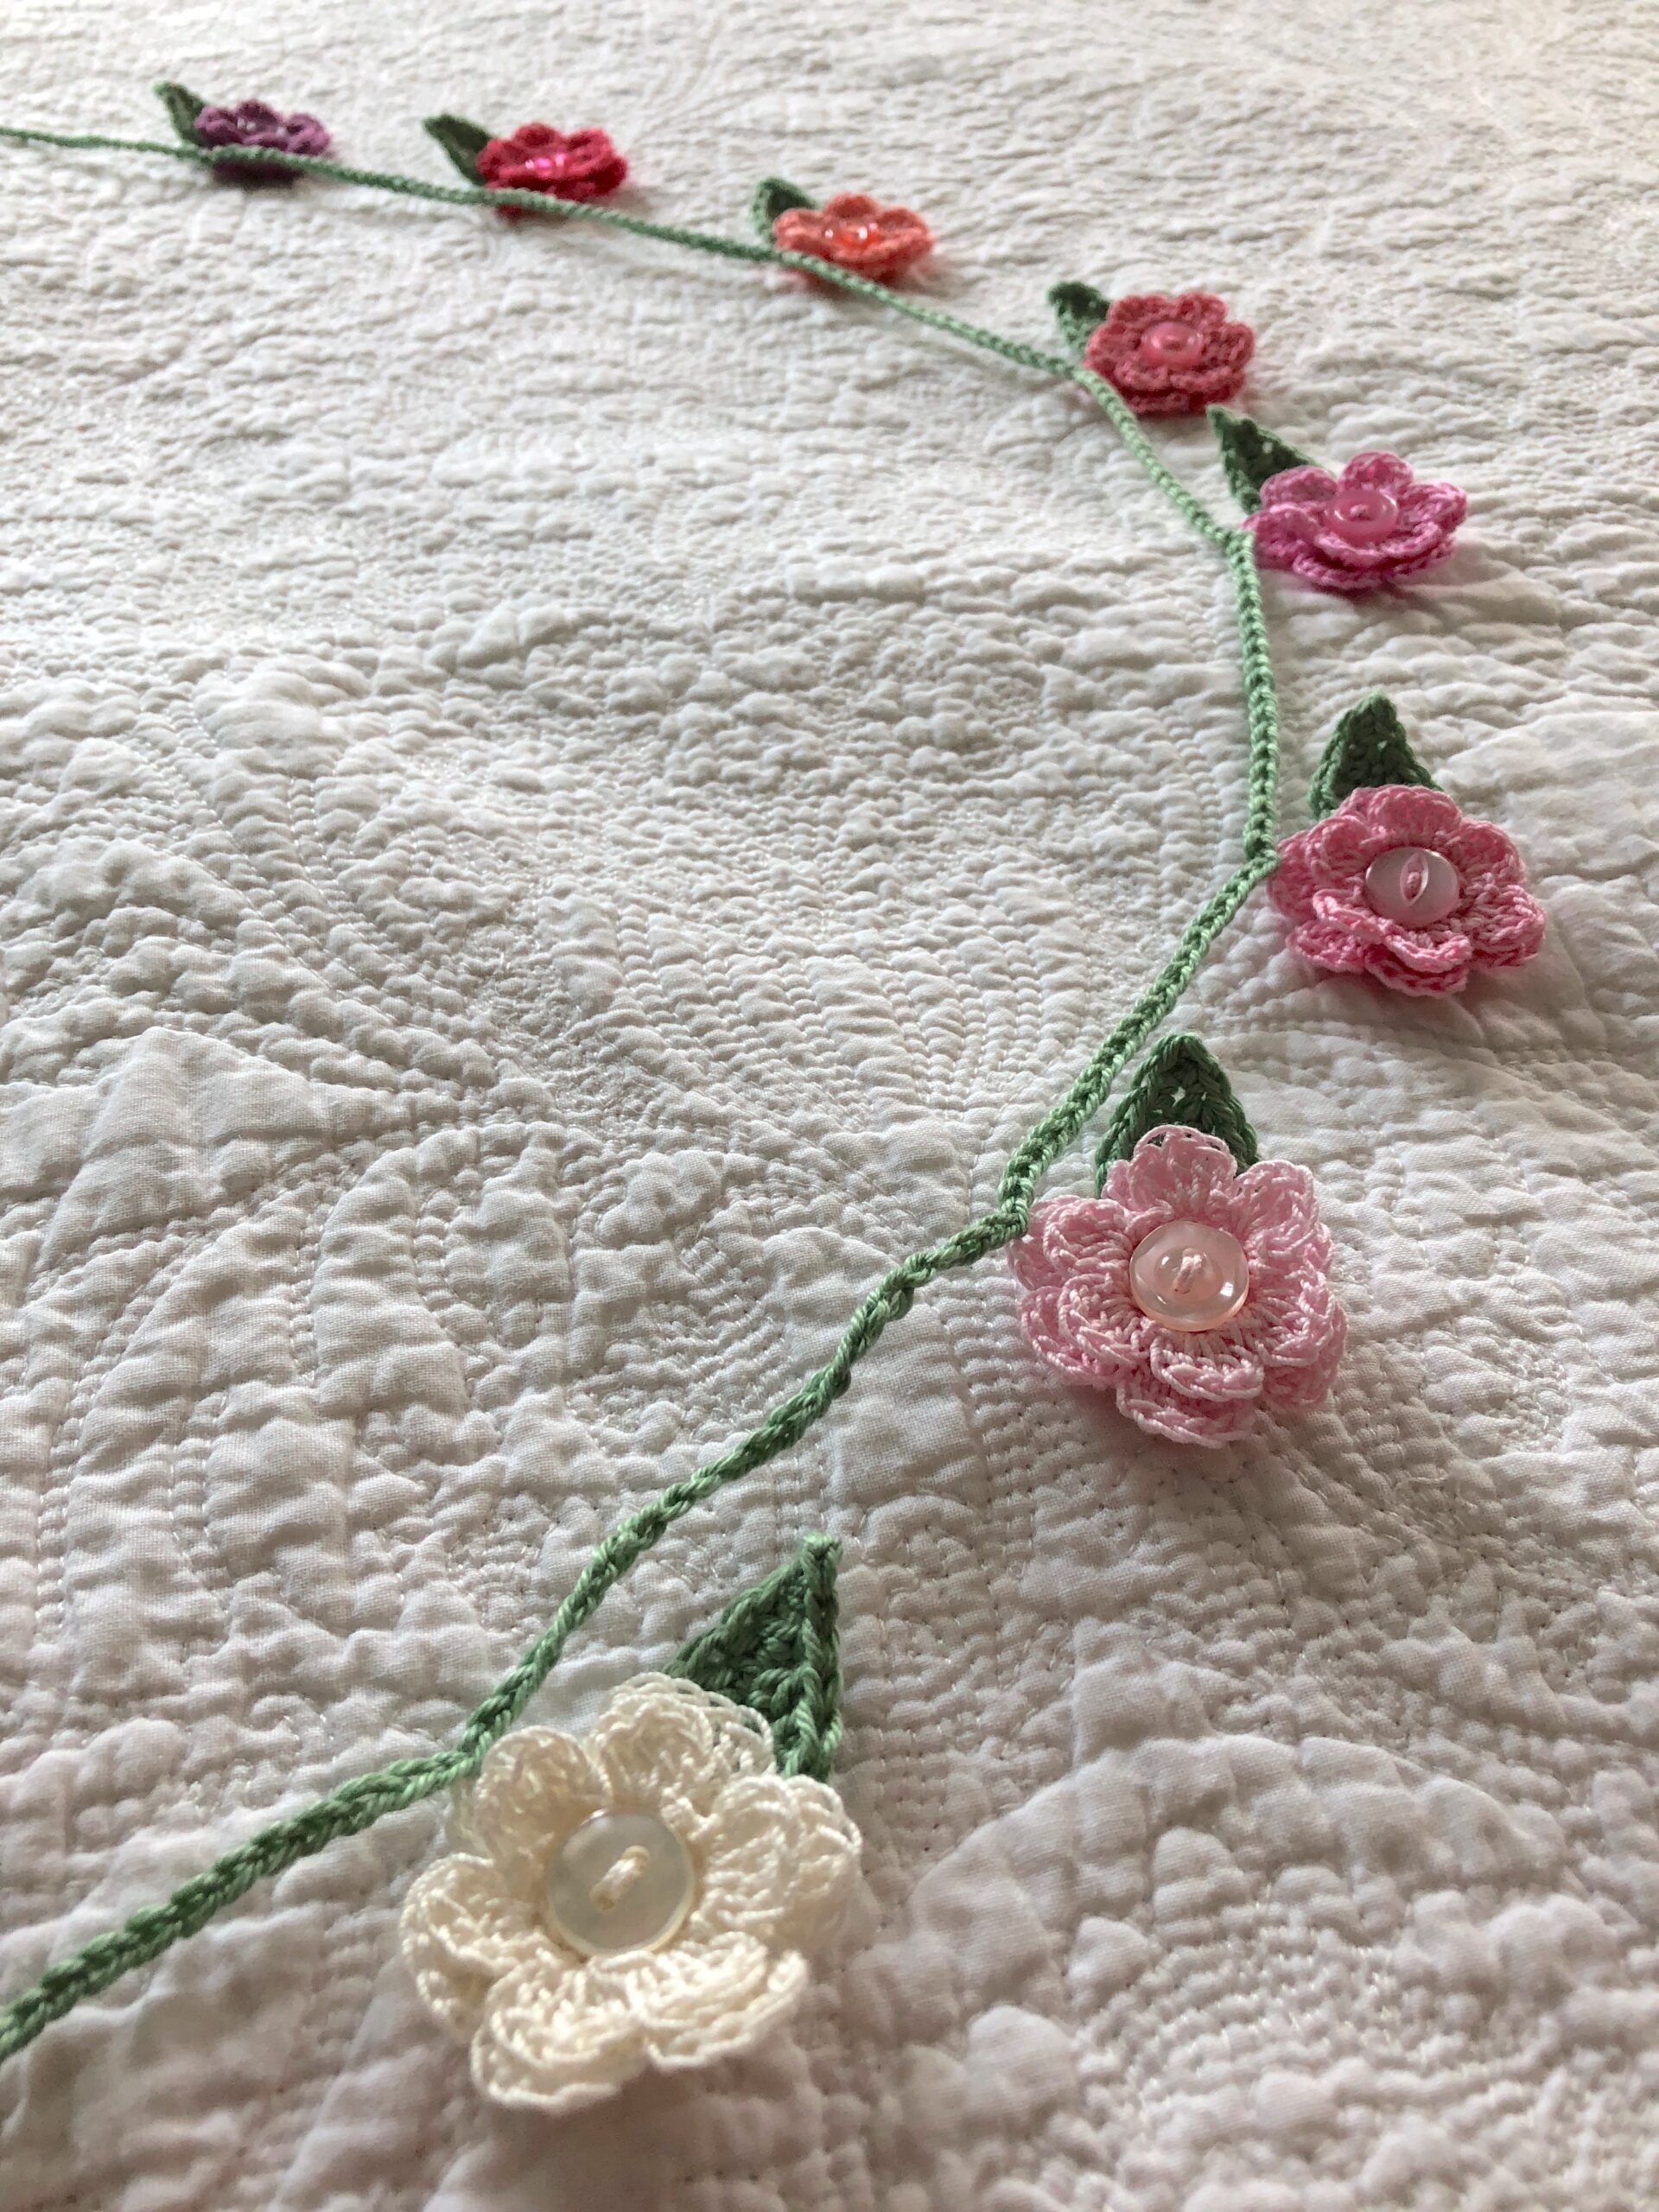 Small hand crocheted flower and leaf garland.